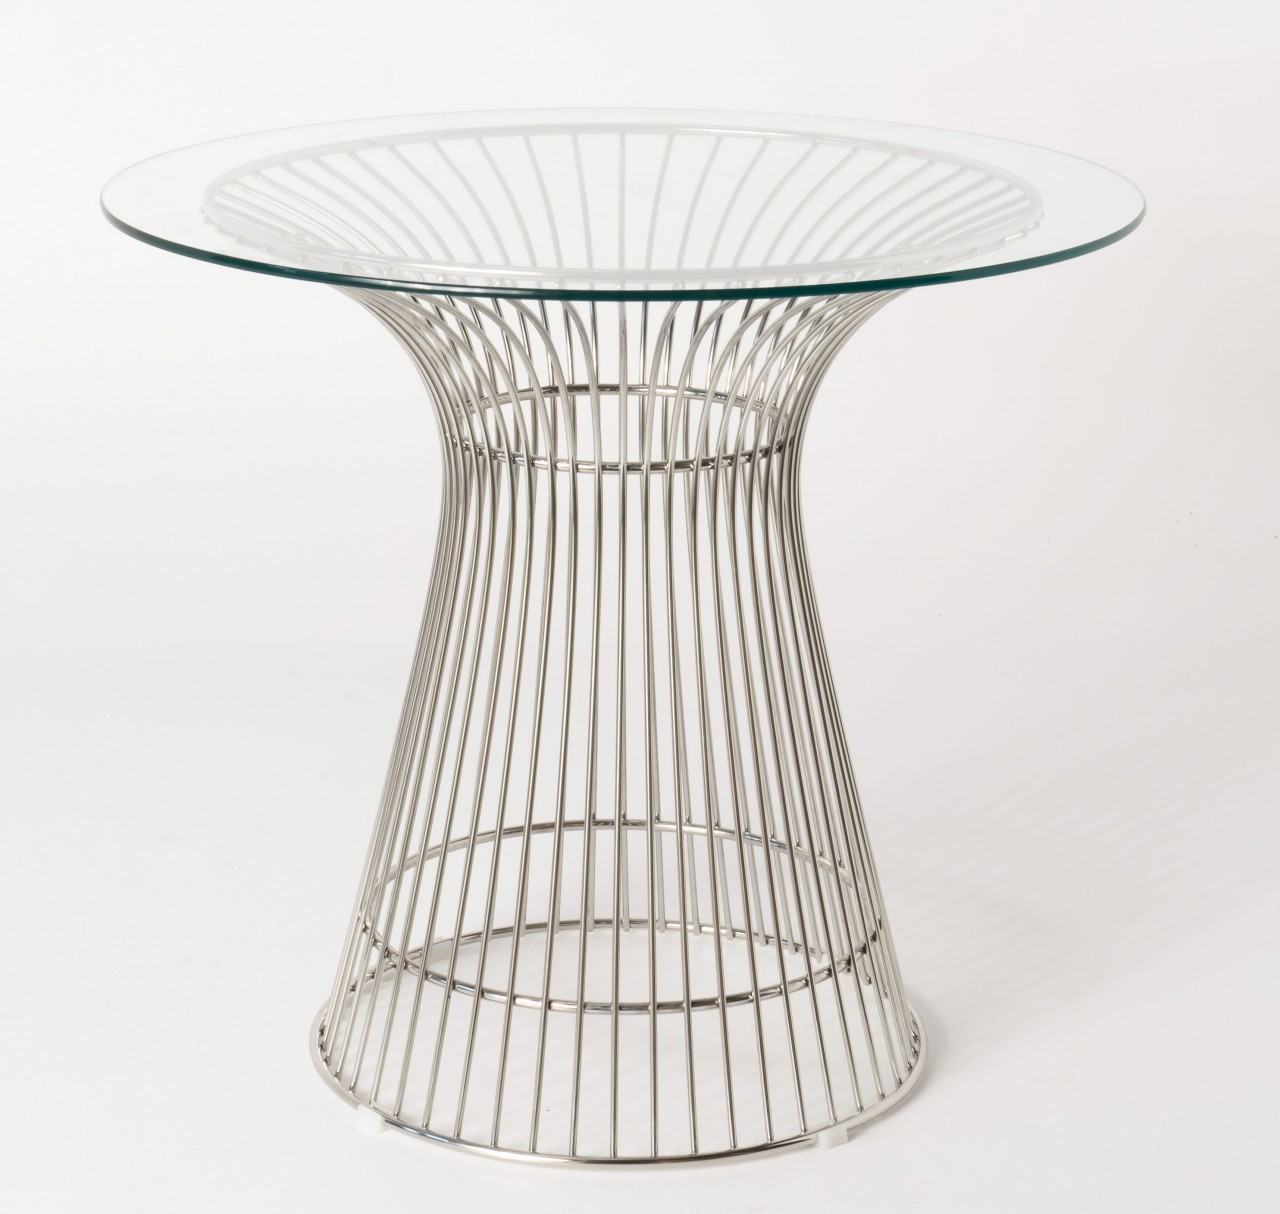 Replica Warren Platner - Wire Dining Table - Stainless Steel - Glass Top - 80cm, 90cm